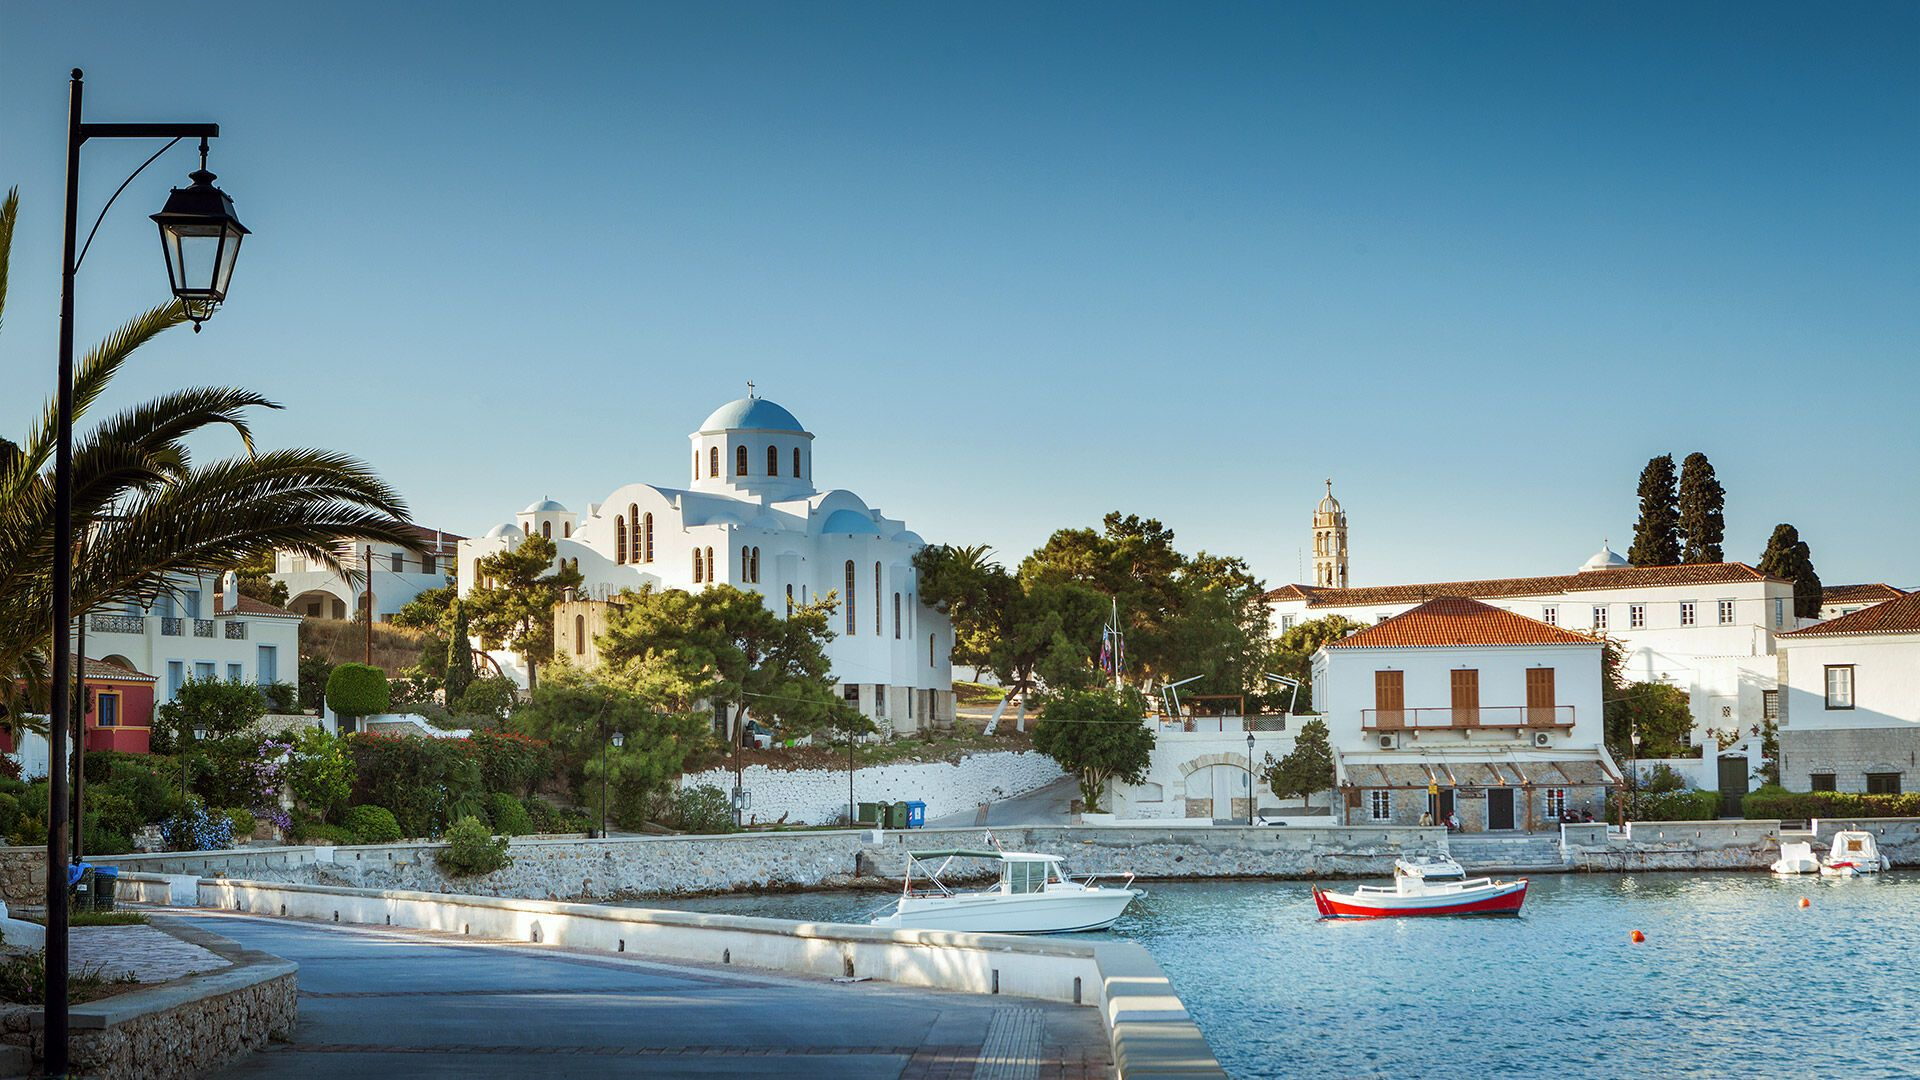 Church in Spetses island